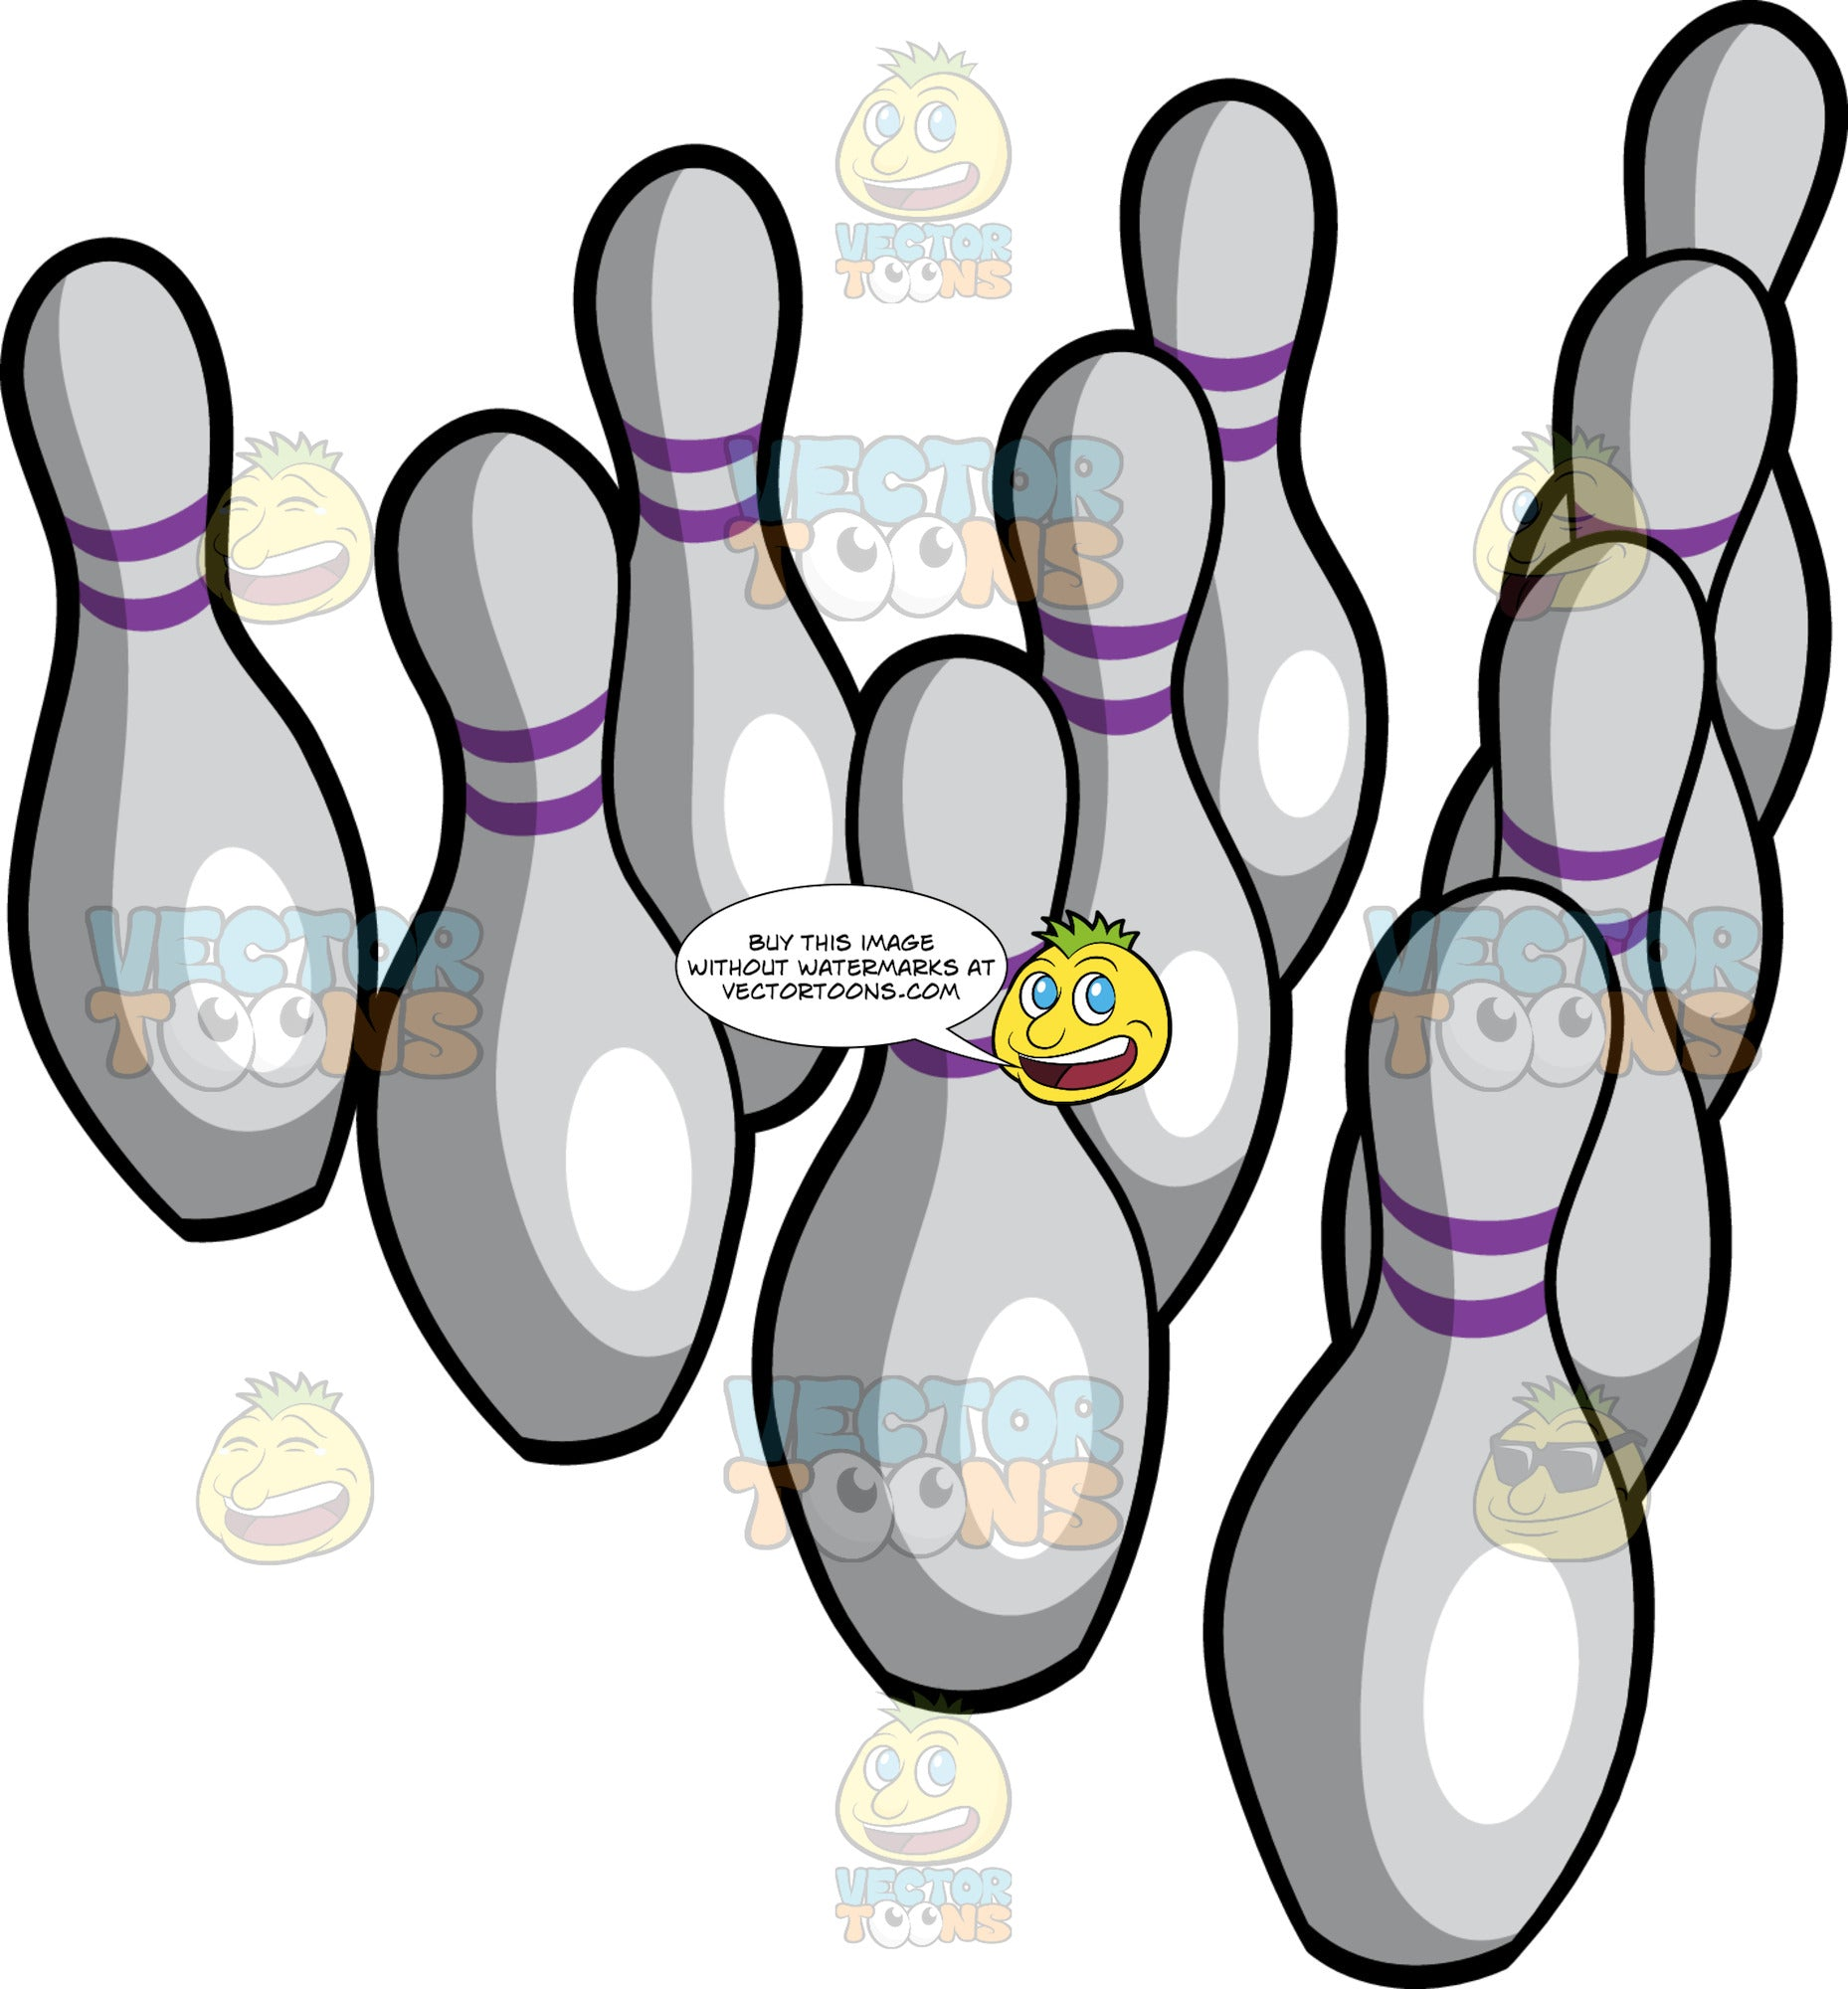 Bowling Pins In A Traditional Layout